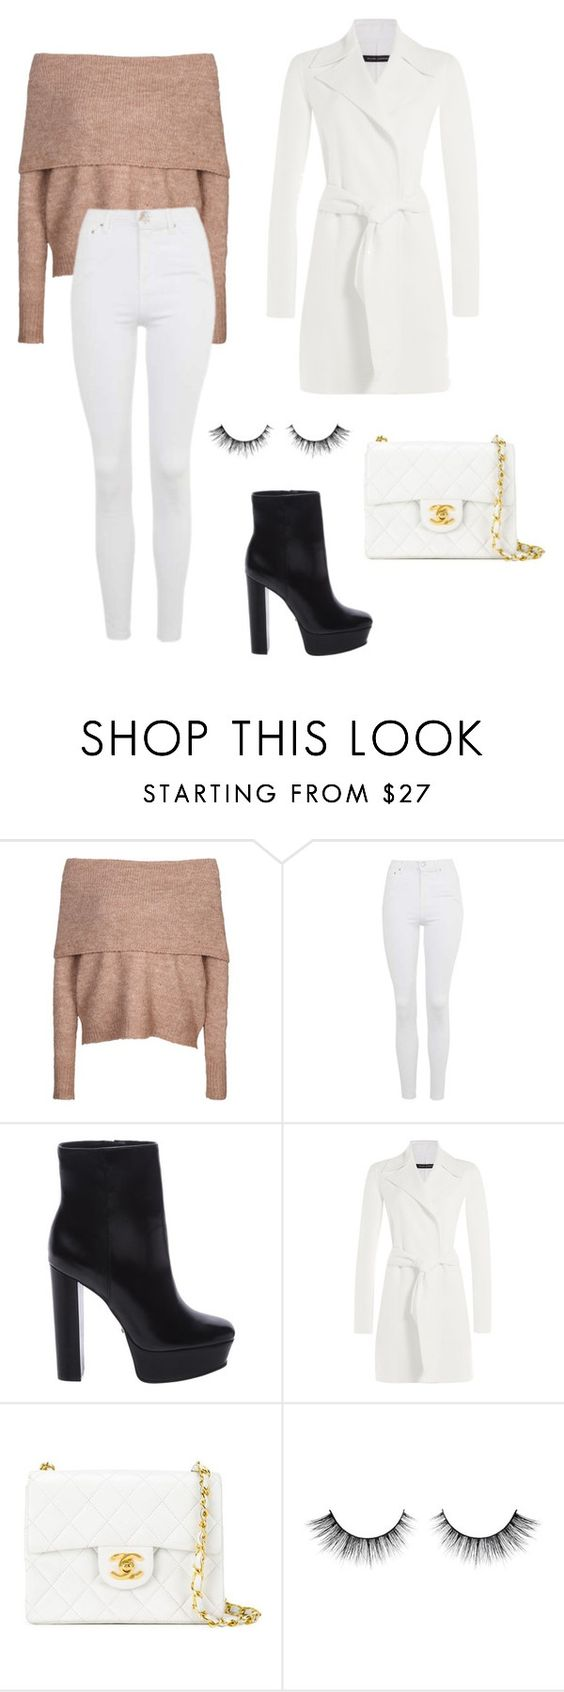 """""""Untitled #241"""" by itsamandarose on Polyvore featuring ONLY, Topshop, Schutz, Ralph Lauren Black Label and Chanel"""